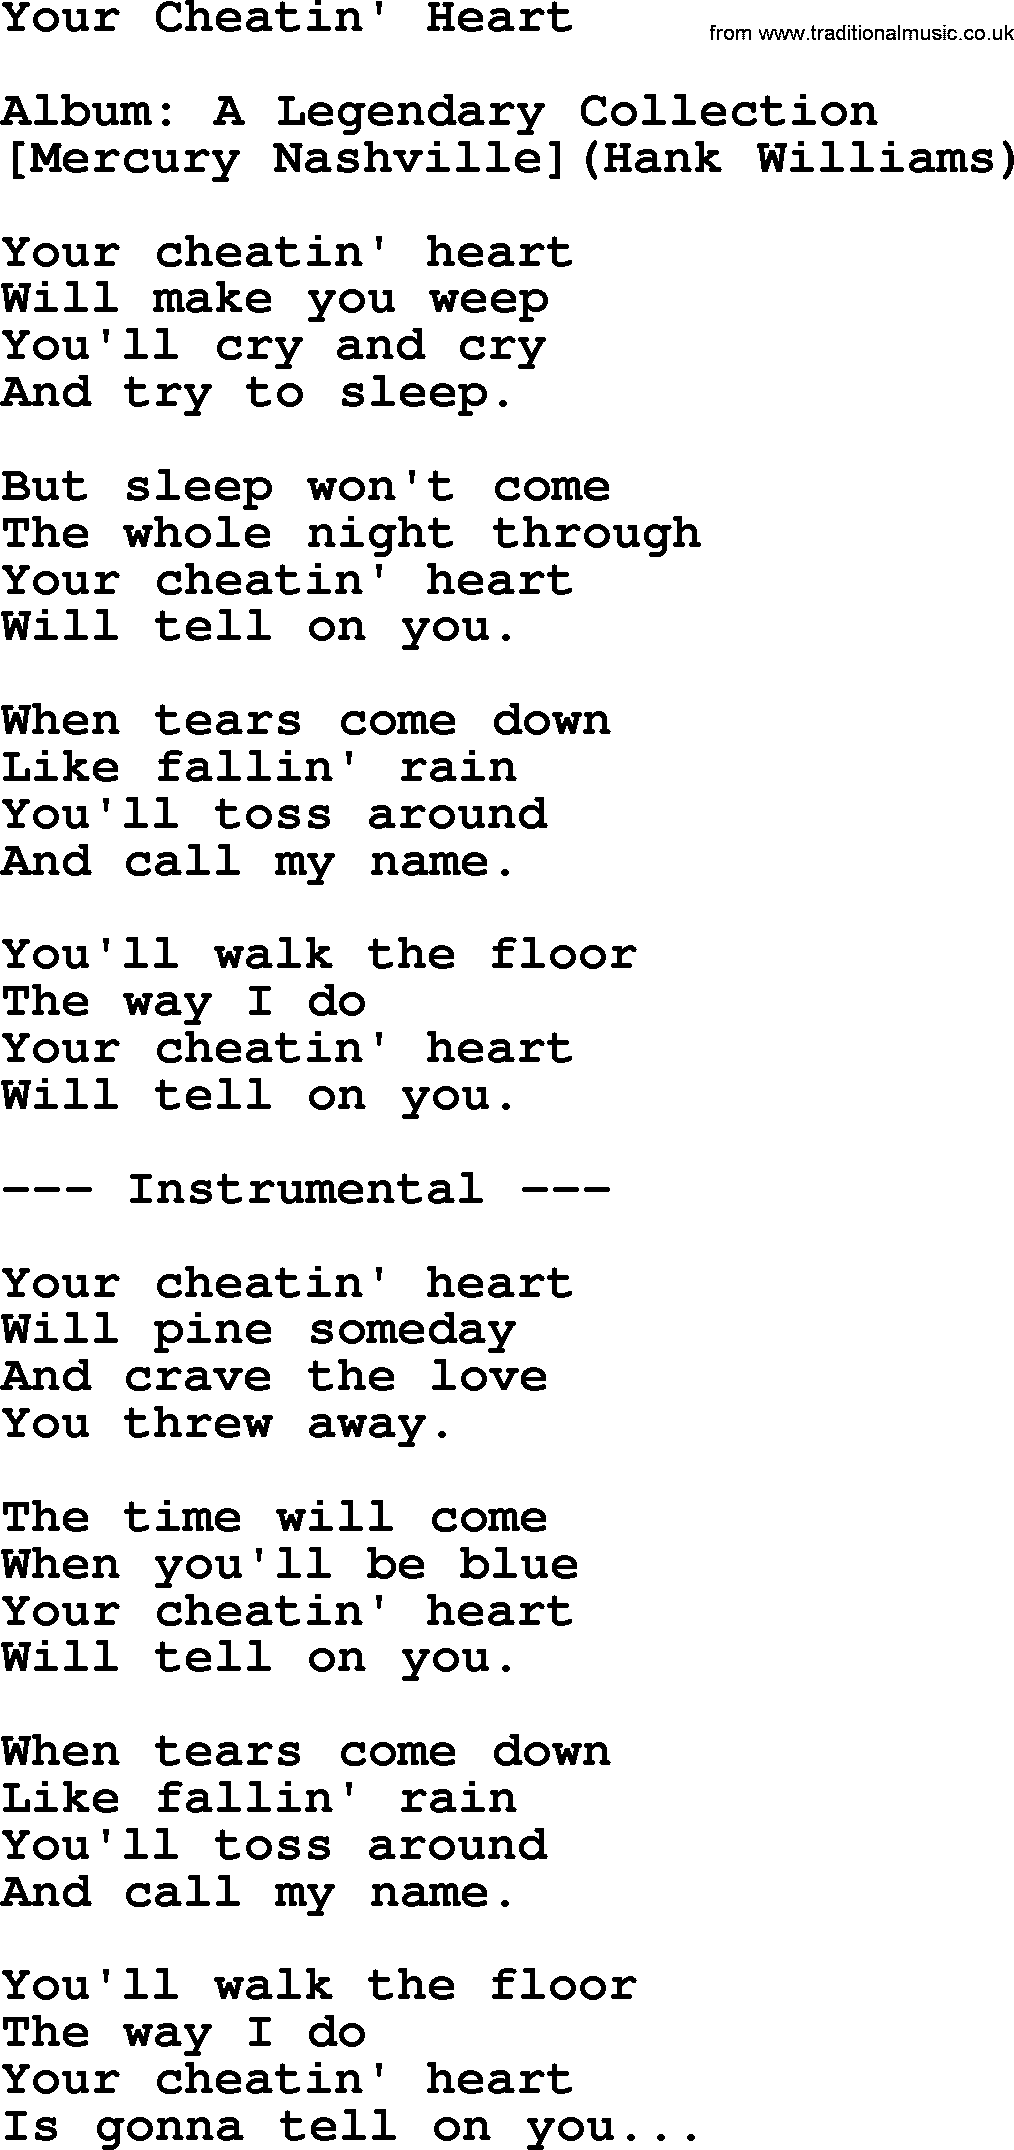 Hank William Sr - Your Cheatin Heart lyrics - YouTube